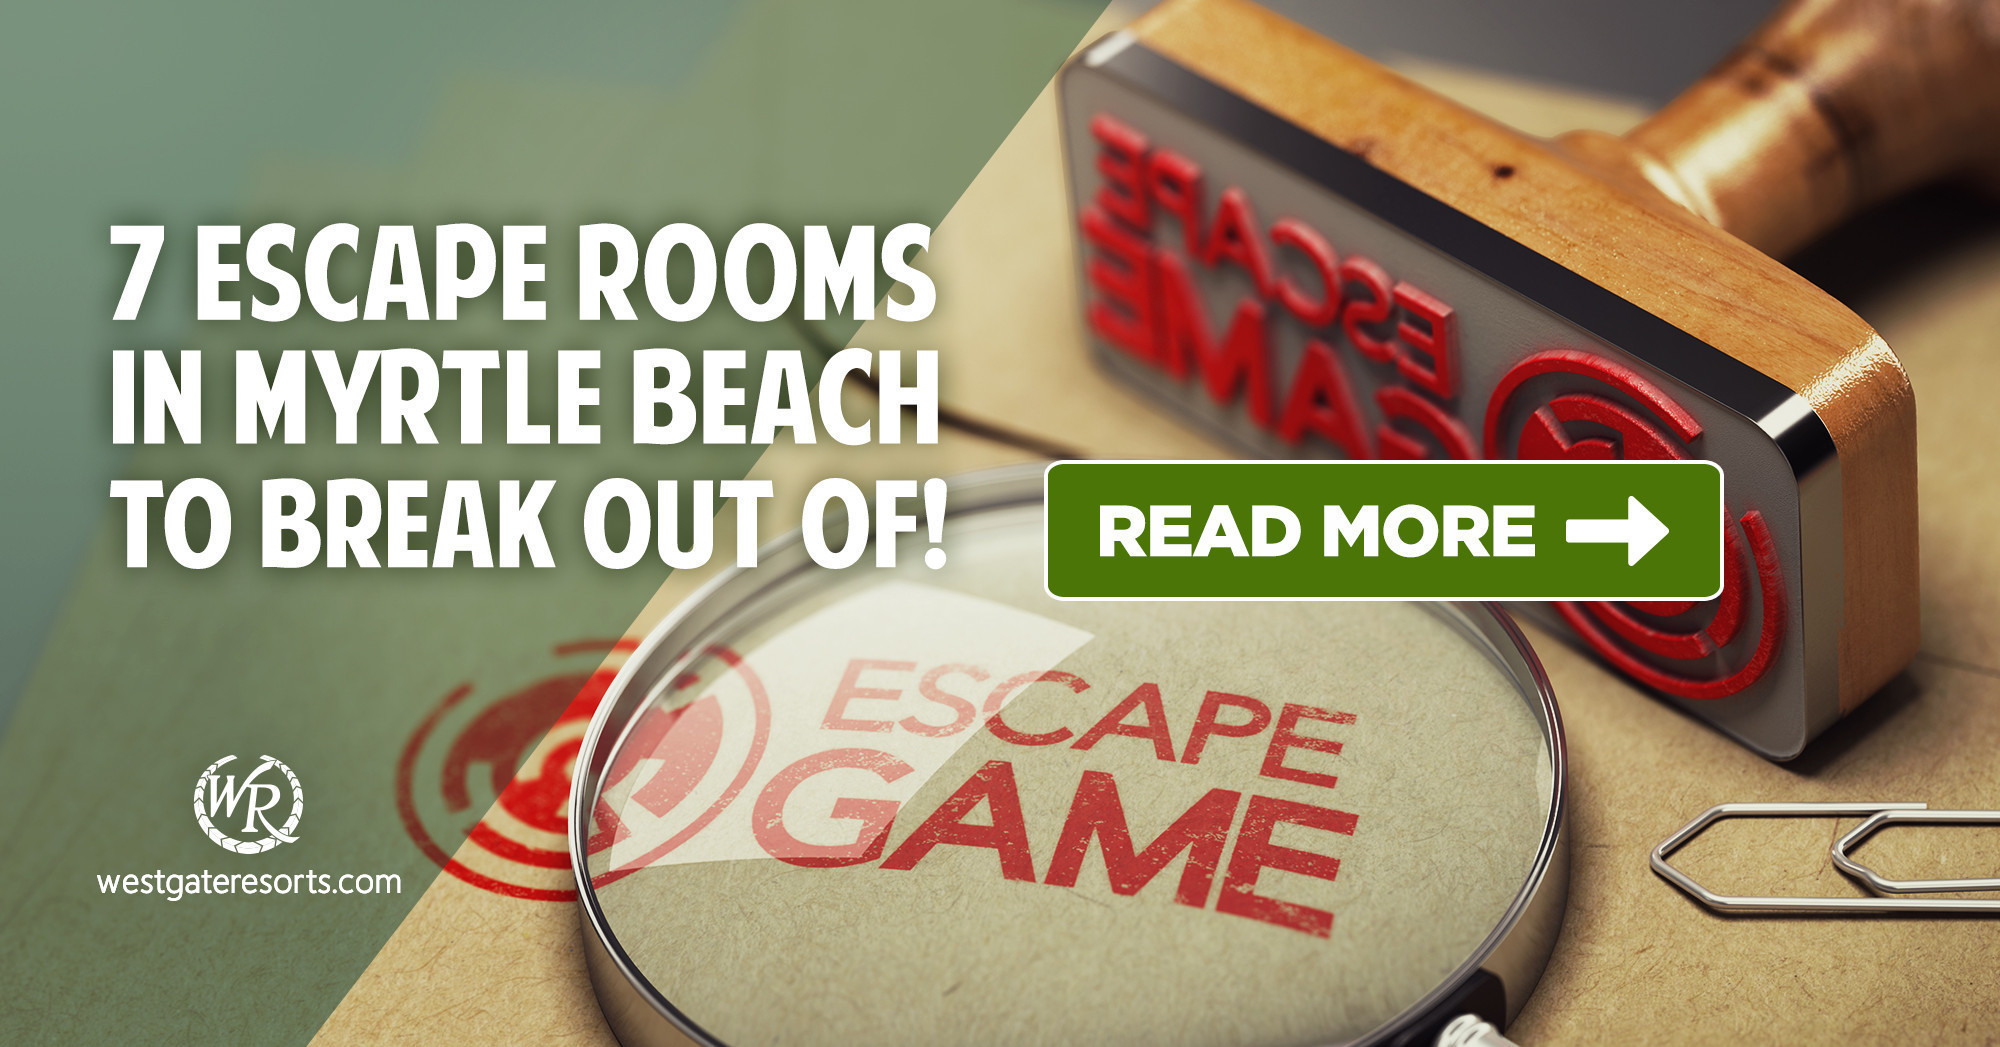 7 Escape Rooms in Myrtle Beach to Break Out Of | Escape Rooms